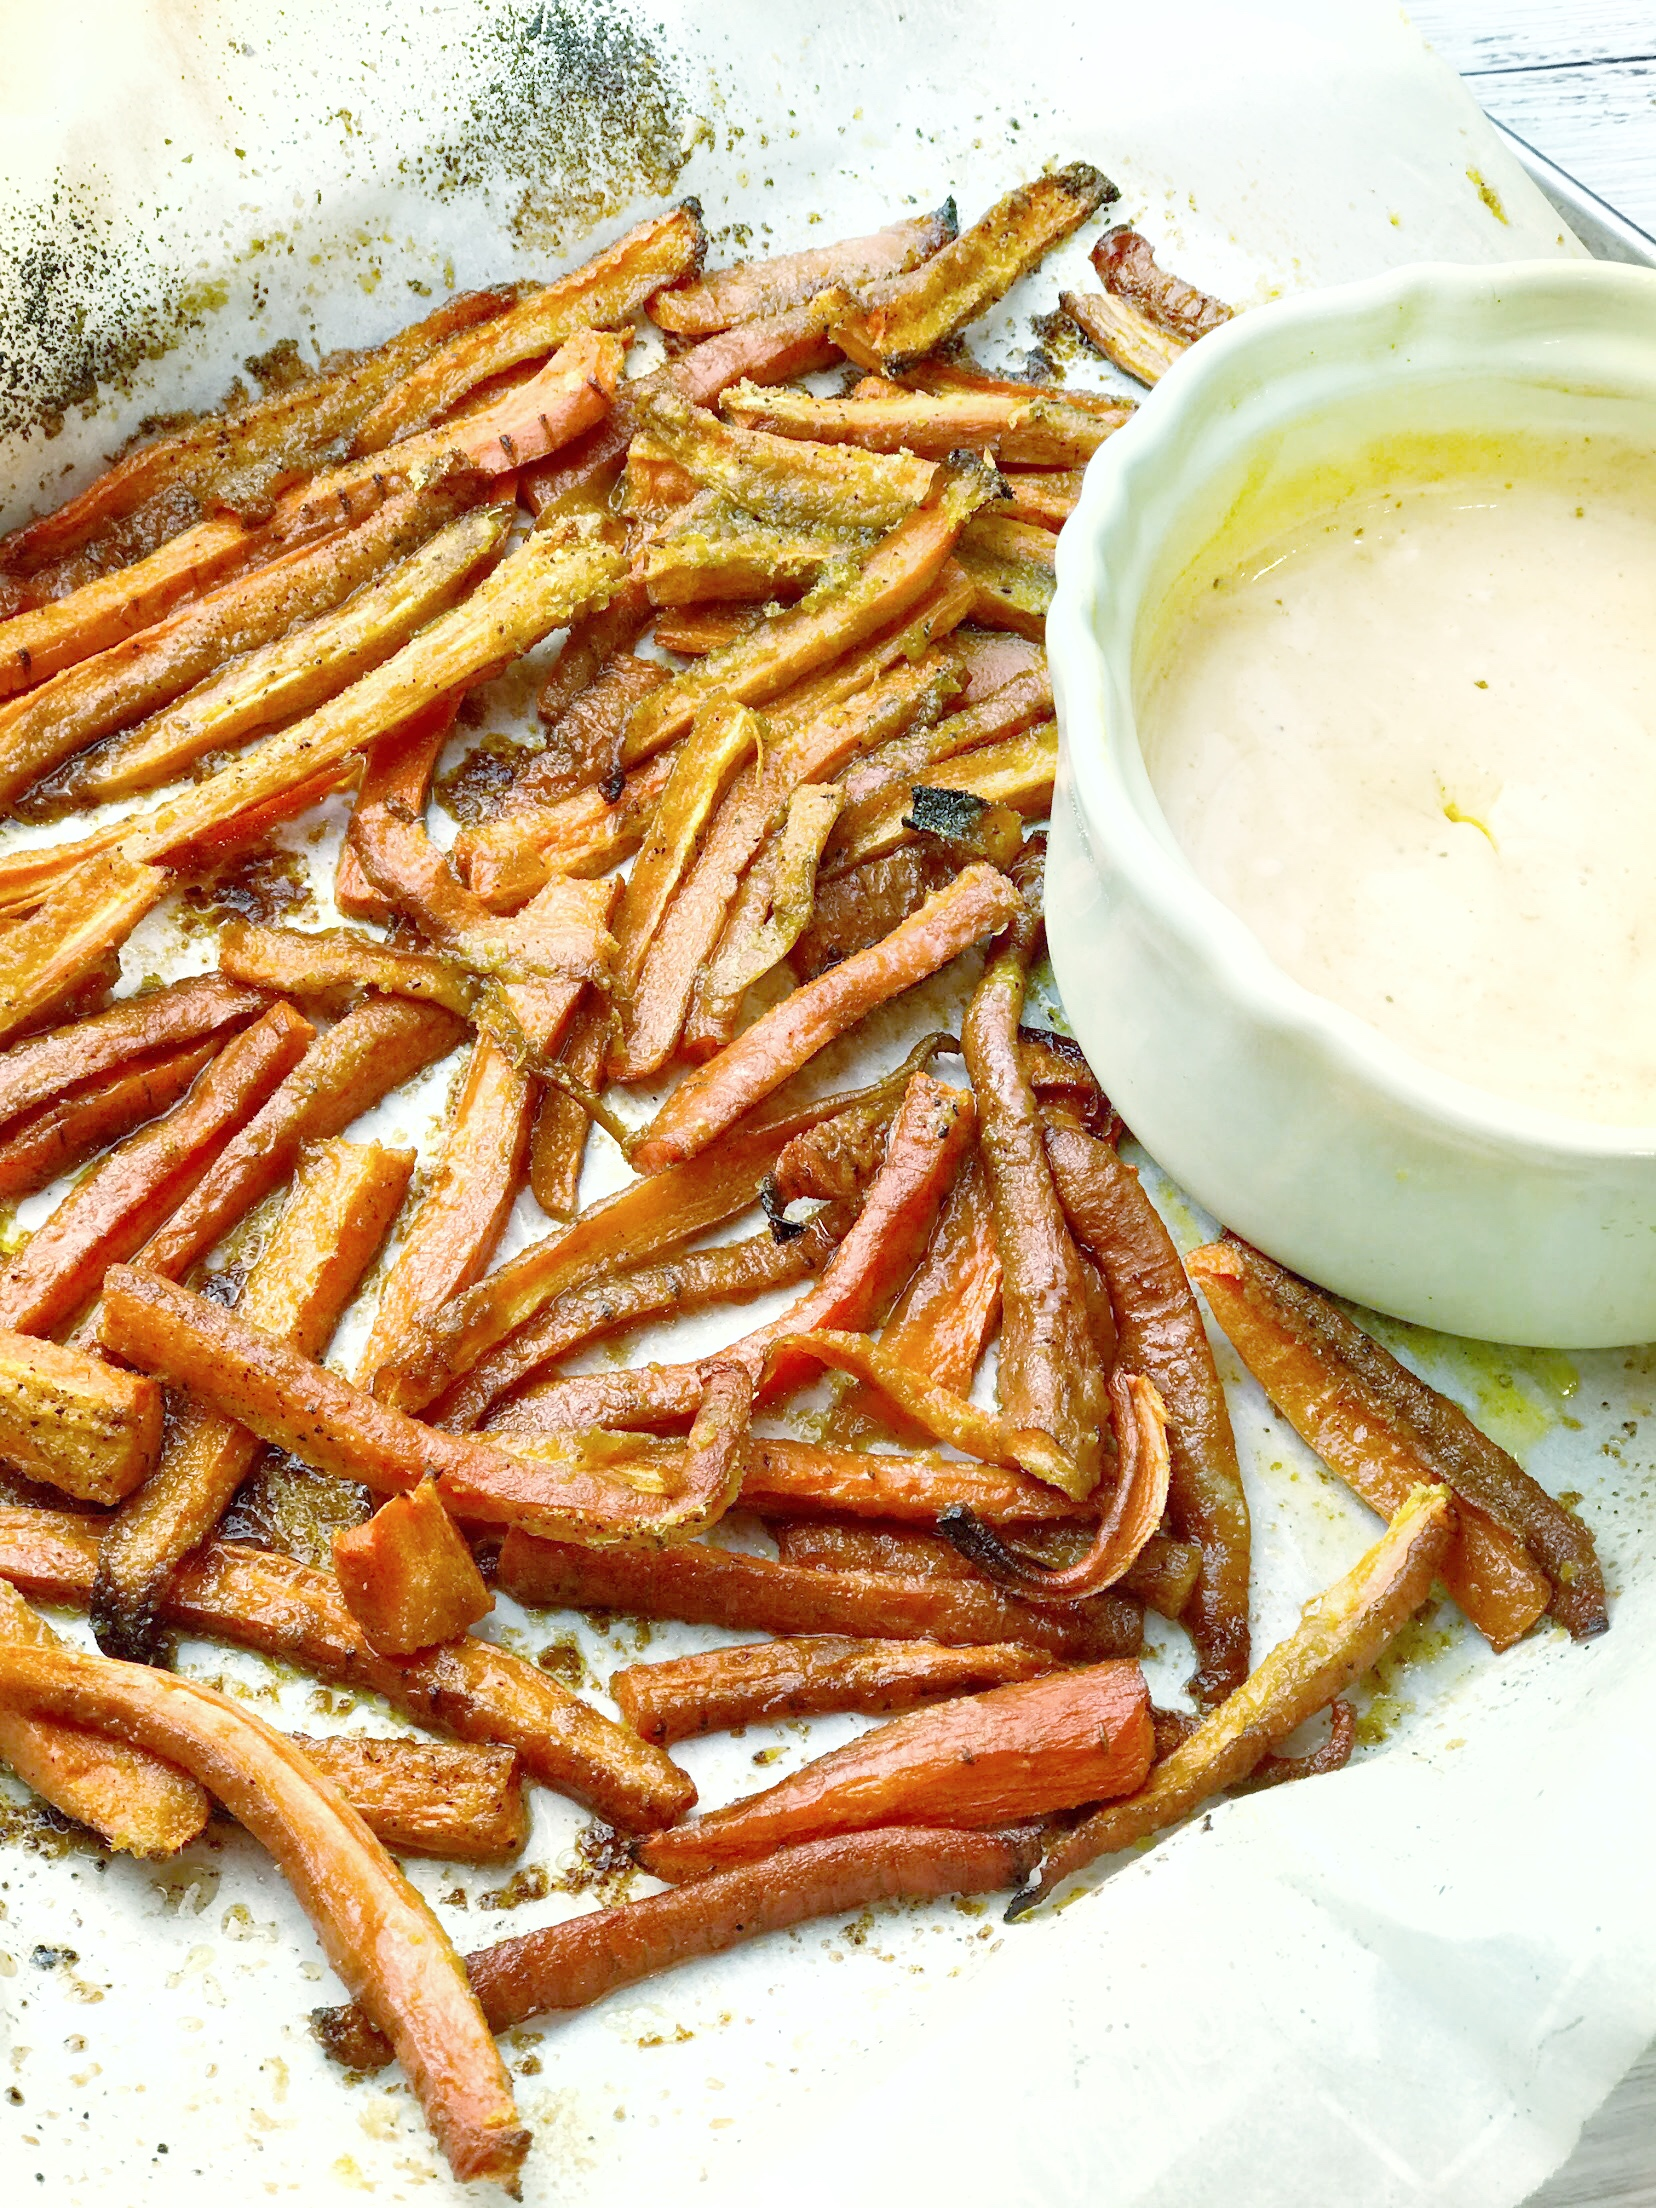 Crispy Carrot Fries with Garlic Dipping Sauce